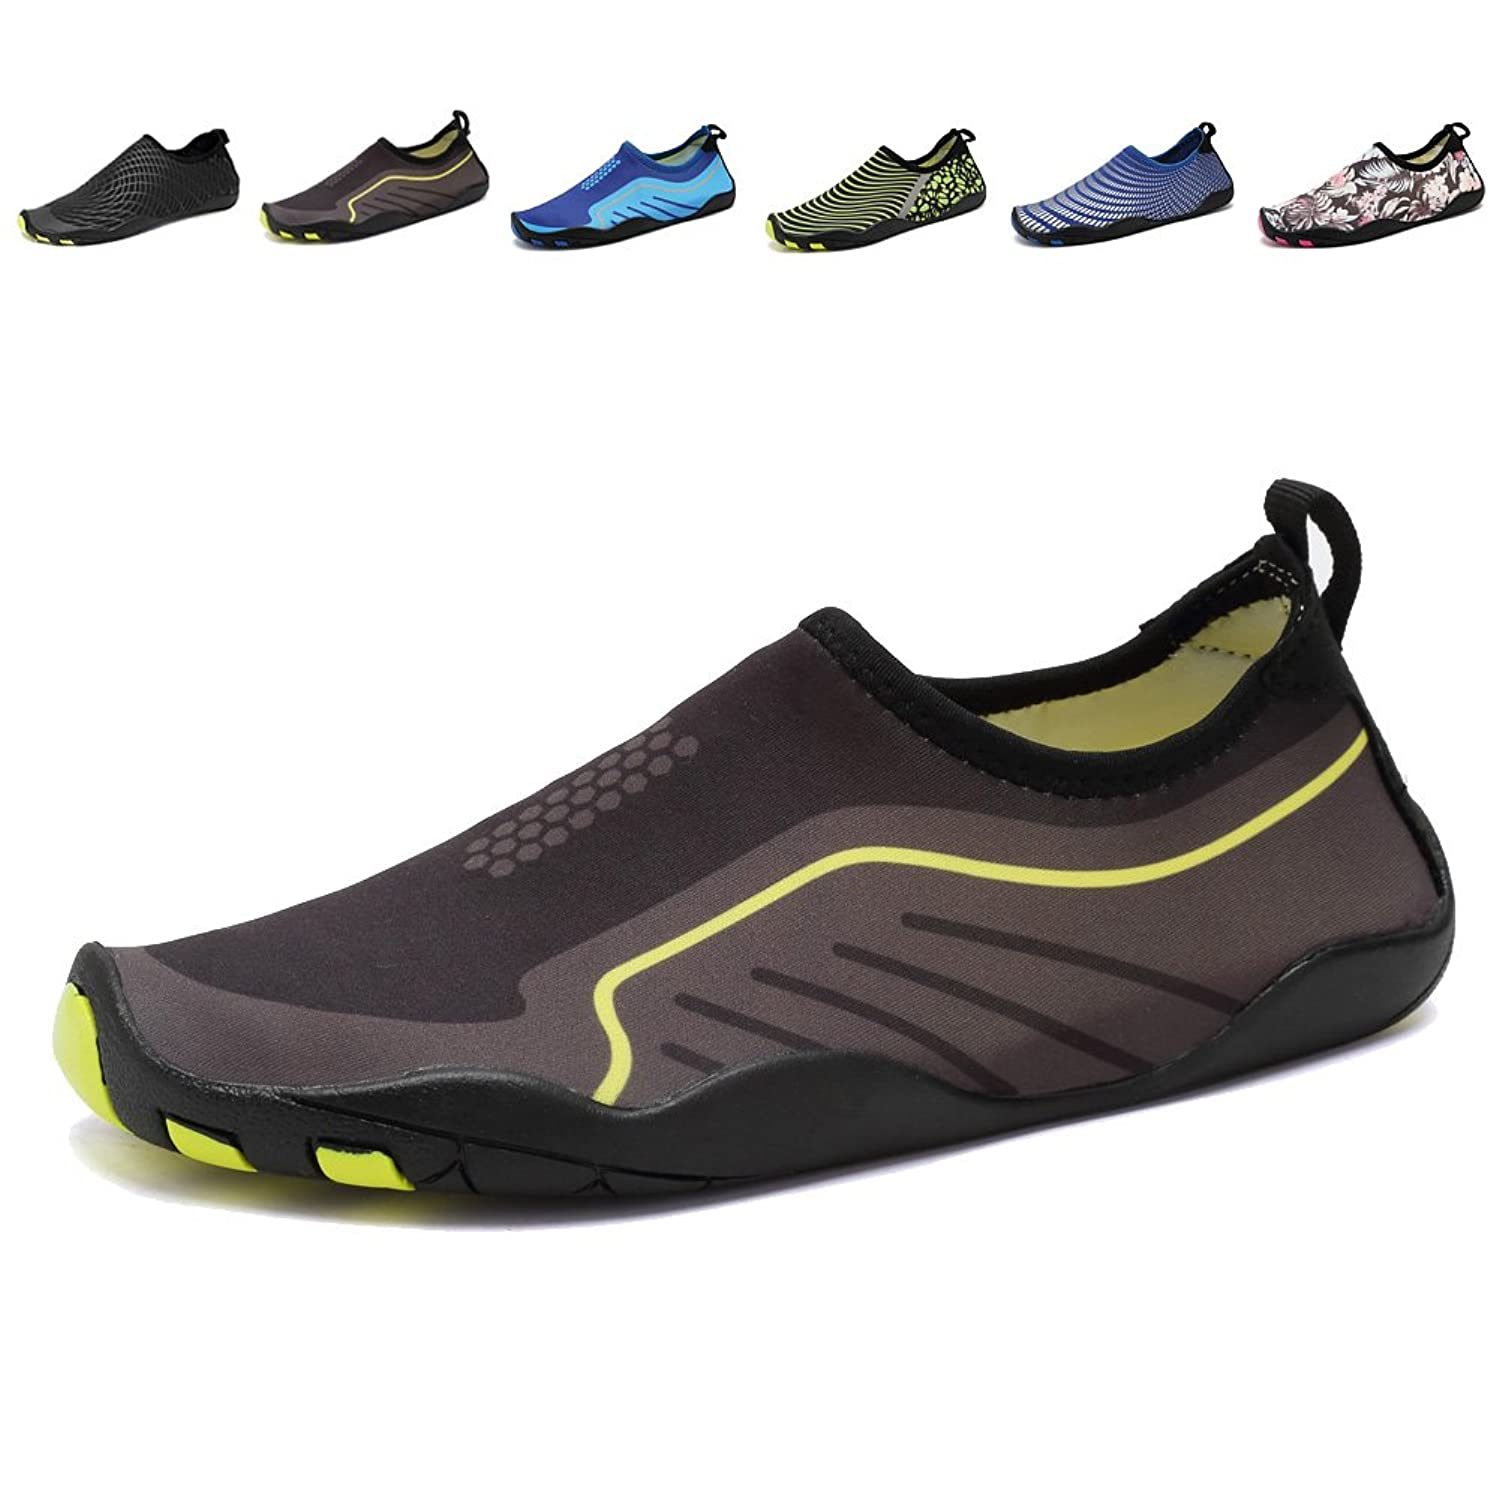 Watersports Footwear | Amazon.com